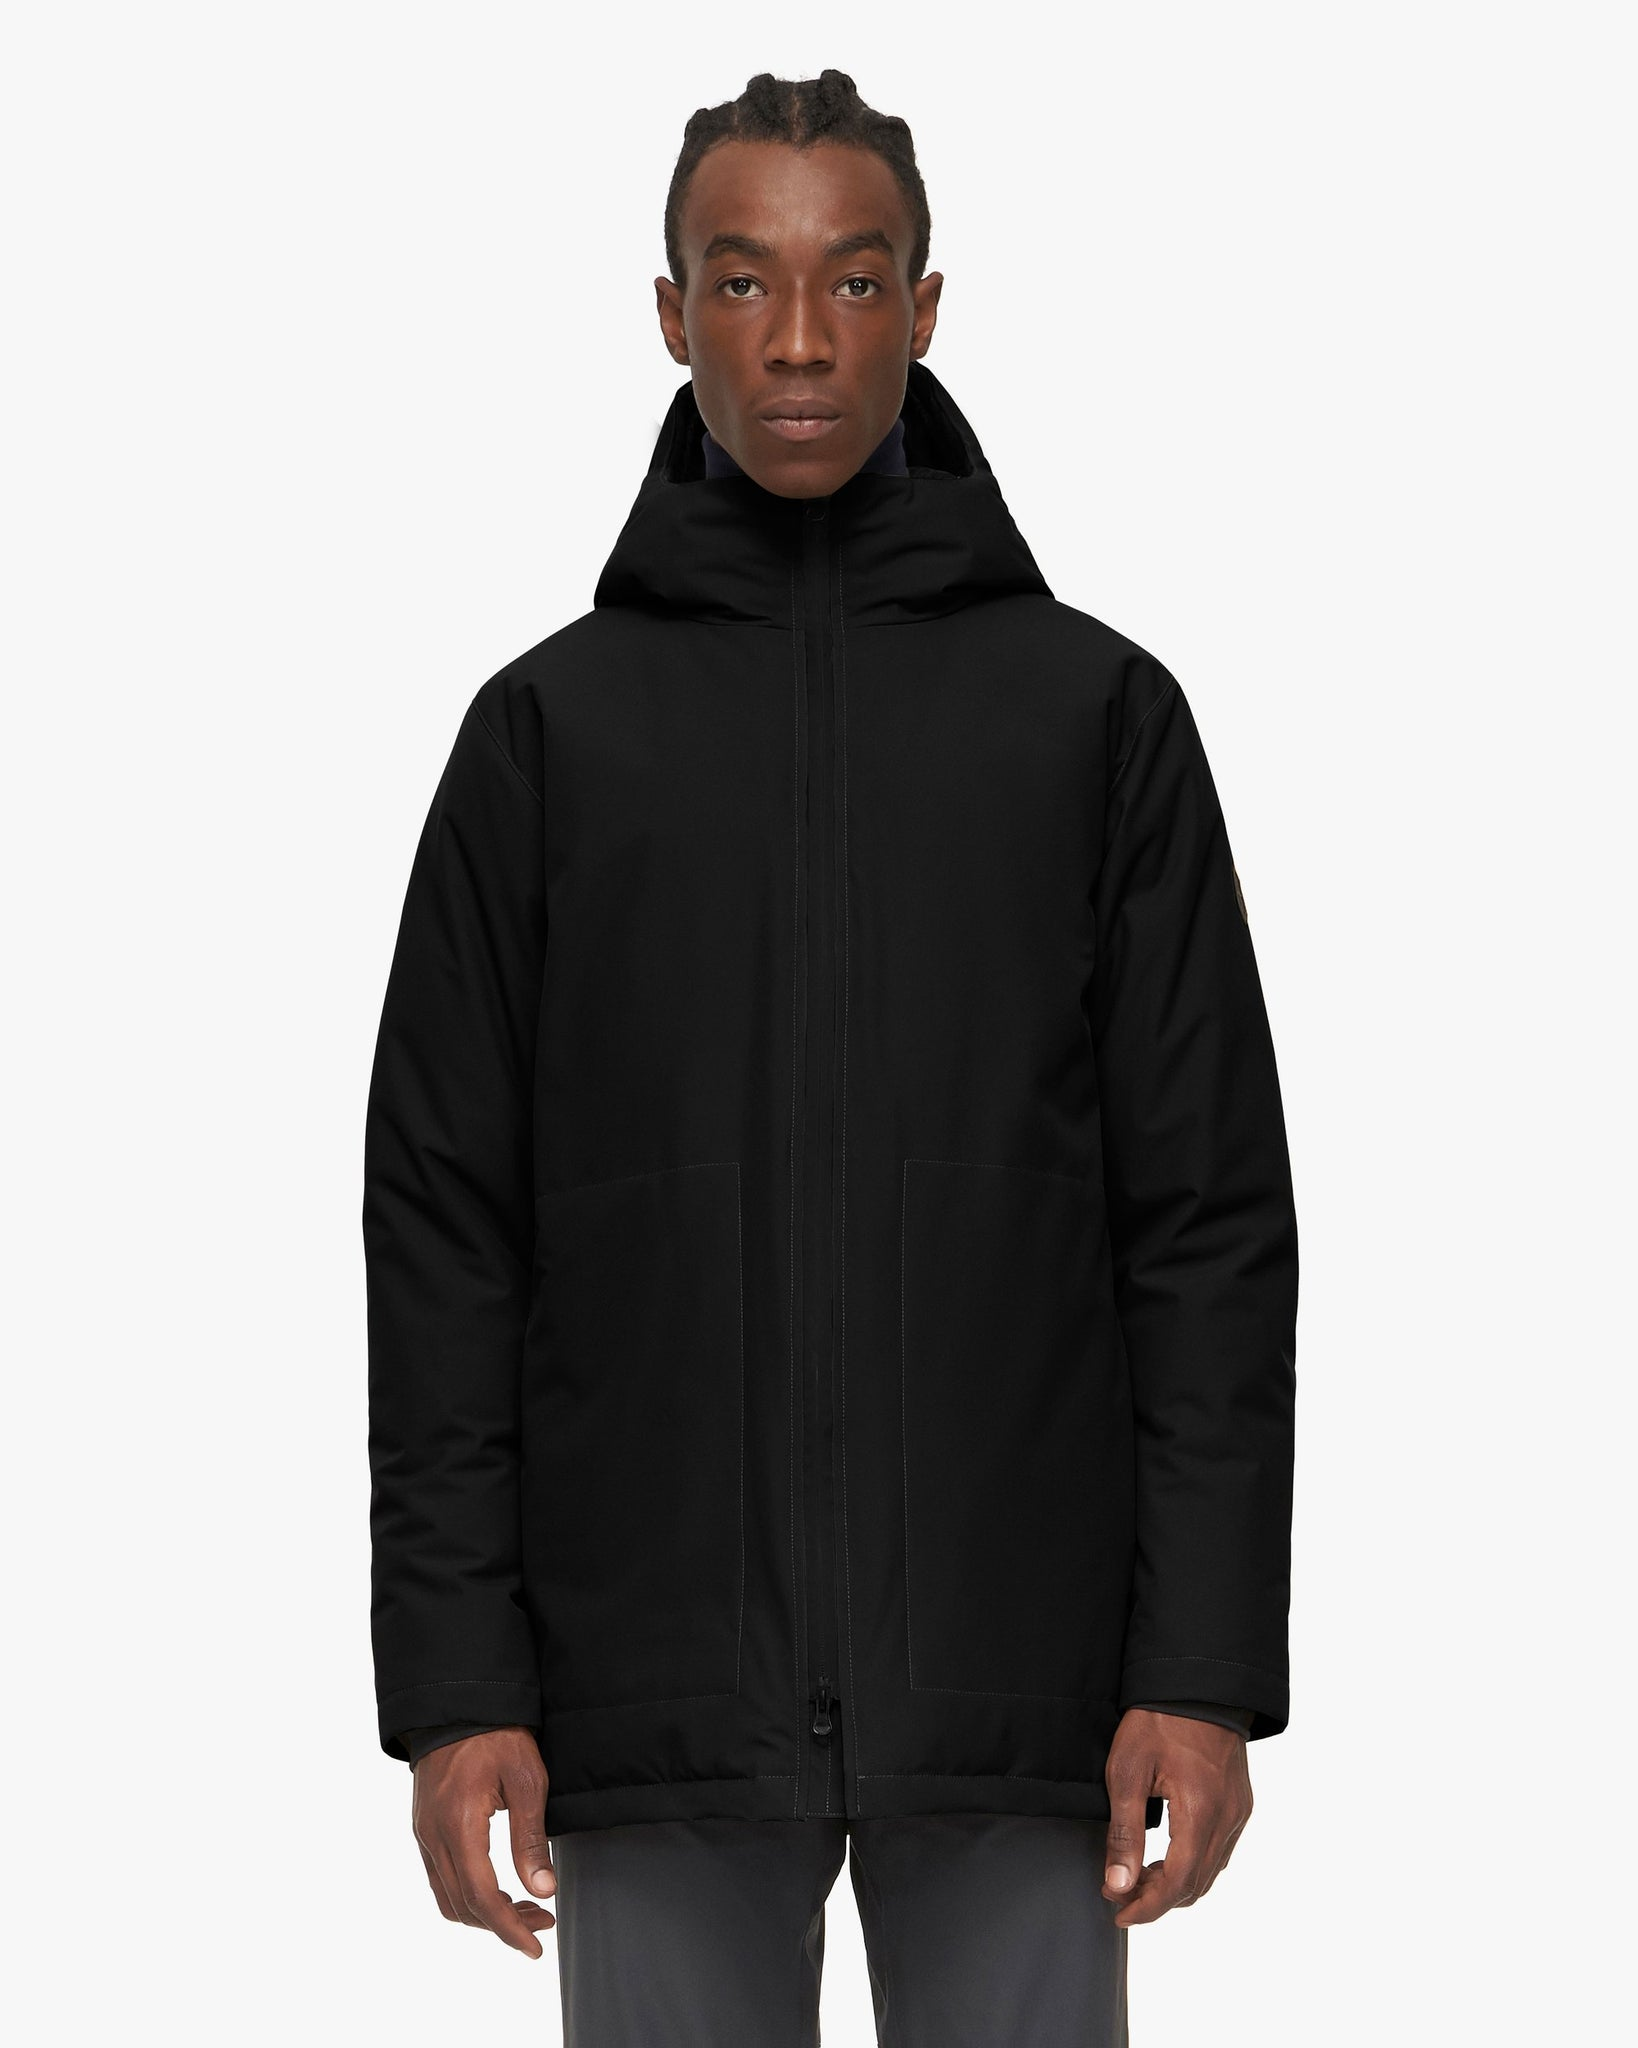 Quartz Co. Jules Down Jacket - Mens